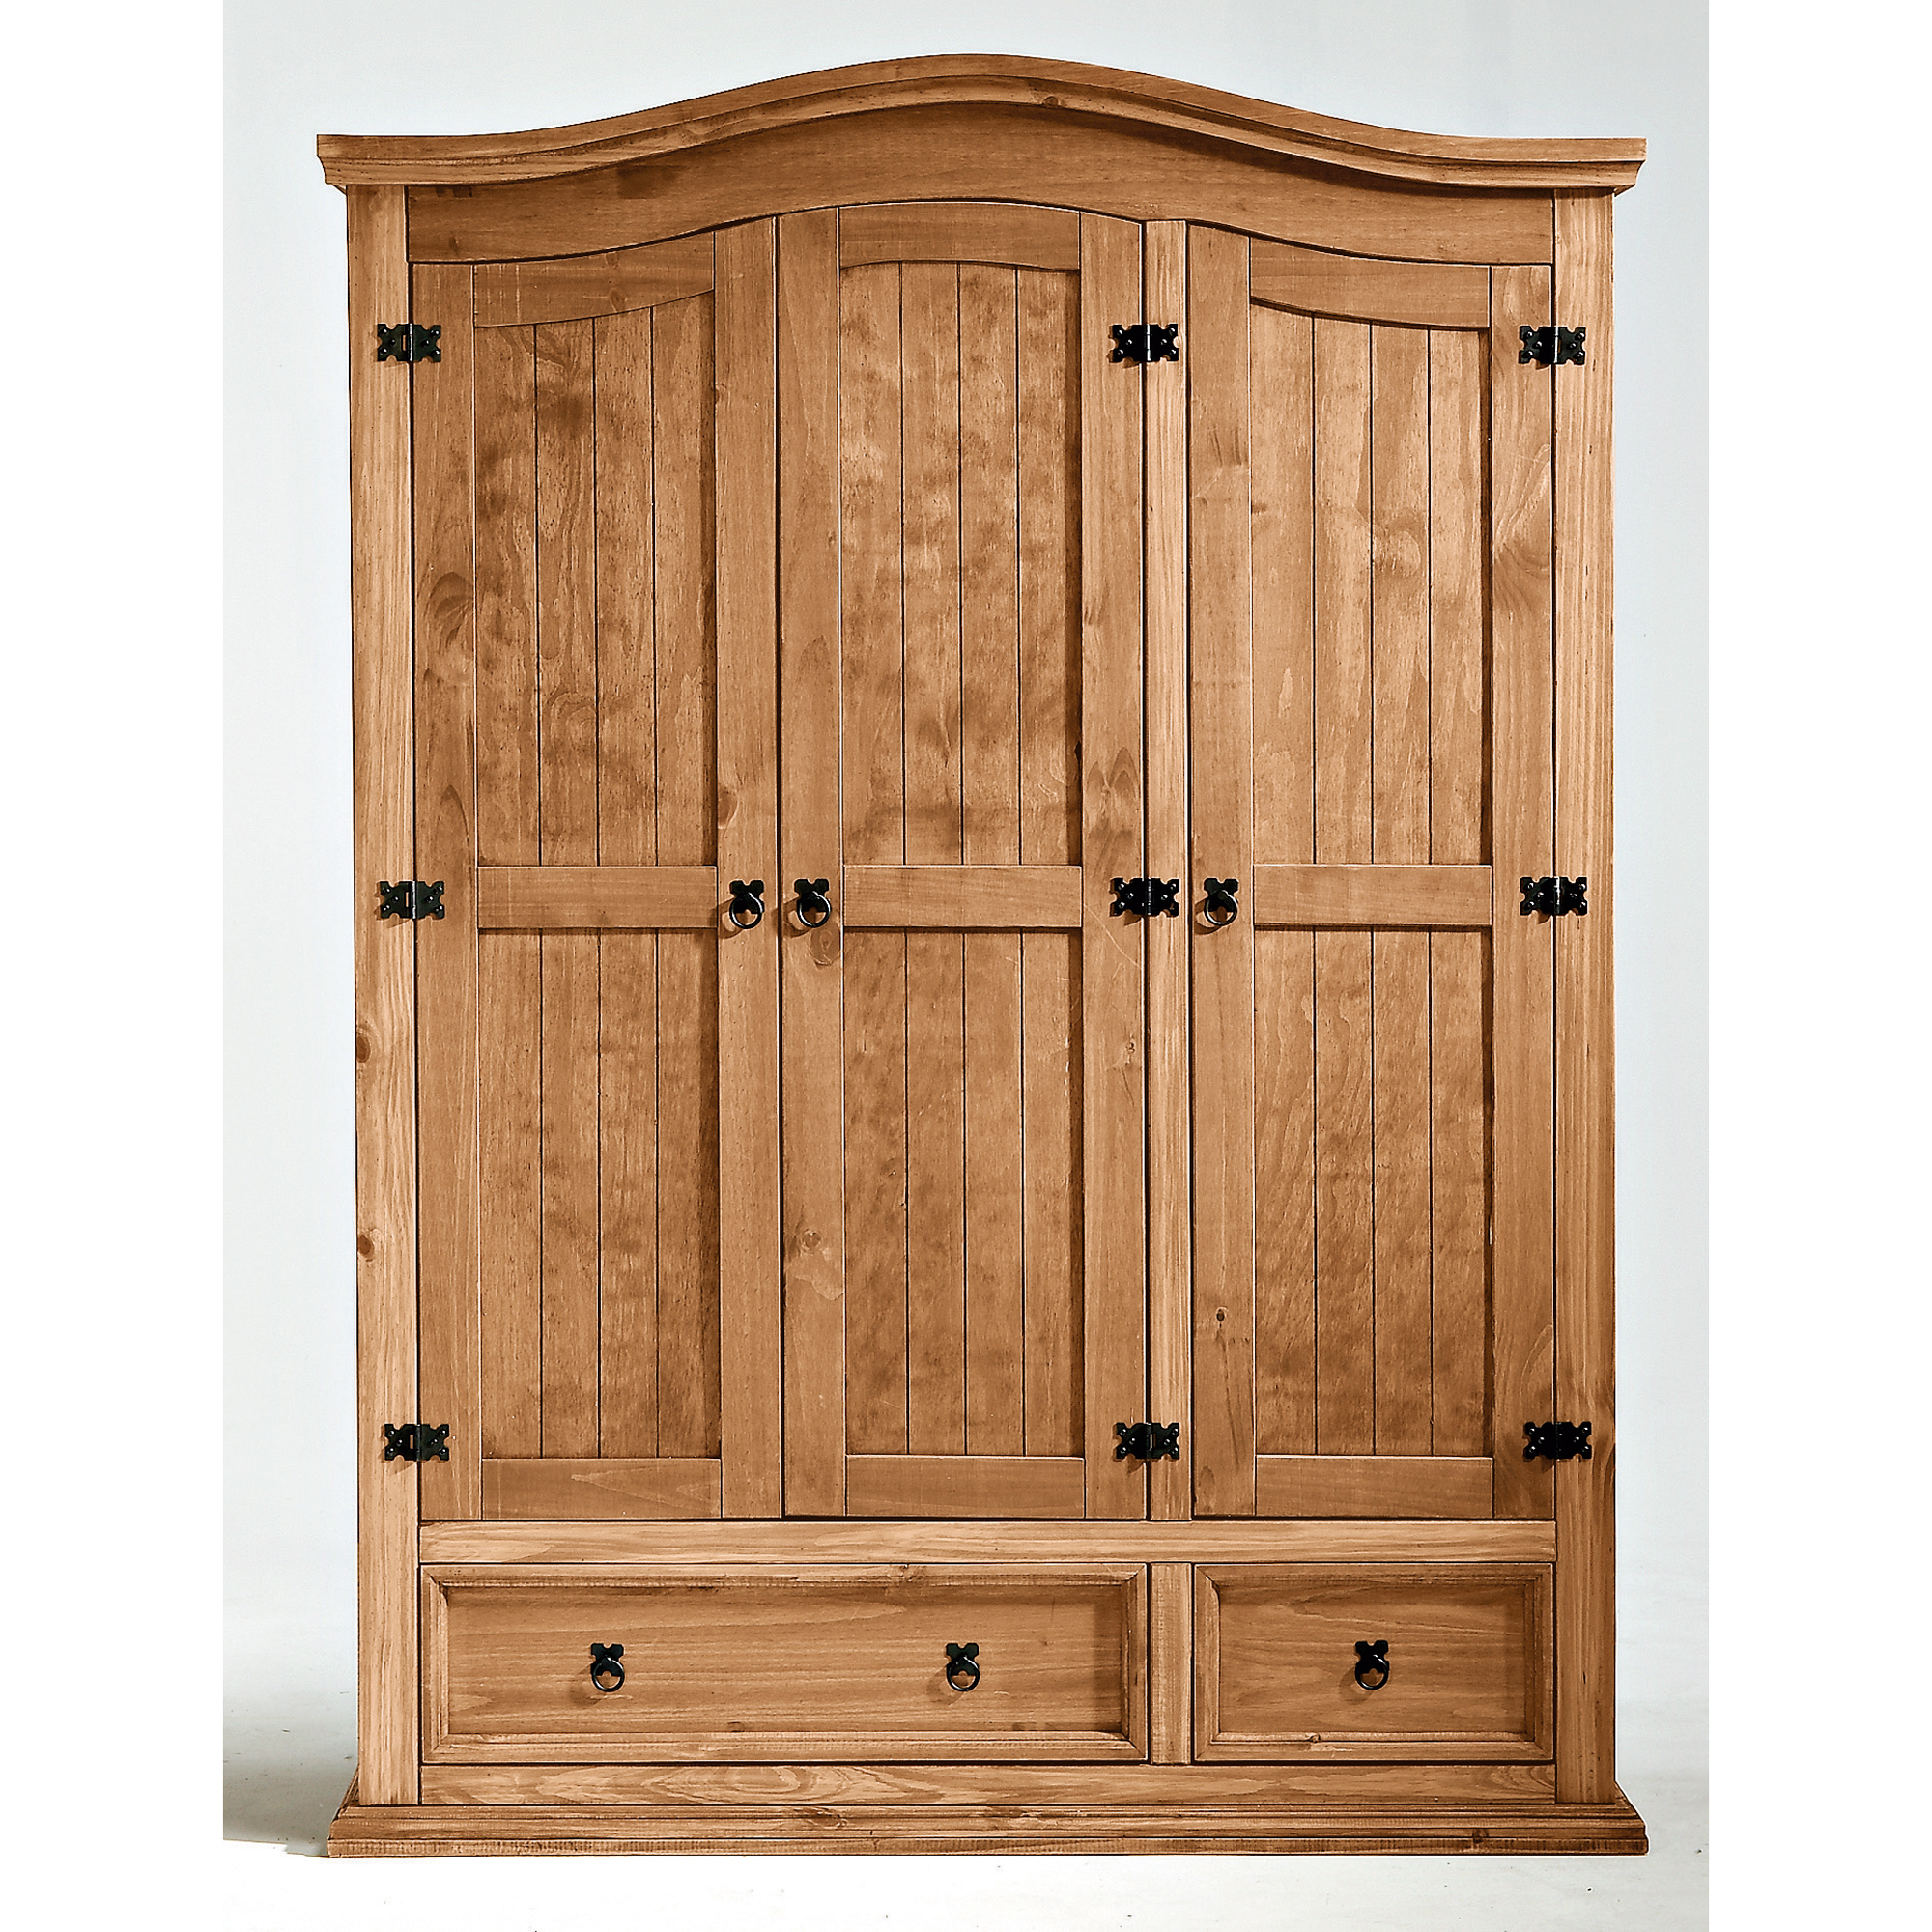 armoire 3 portes 2 3 penderie 1 3 ling re el patio anniversaire 40 ans acheter ce produit au. Black Bedroom Furniture Sets. Home Design Ideas